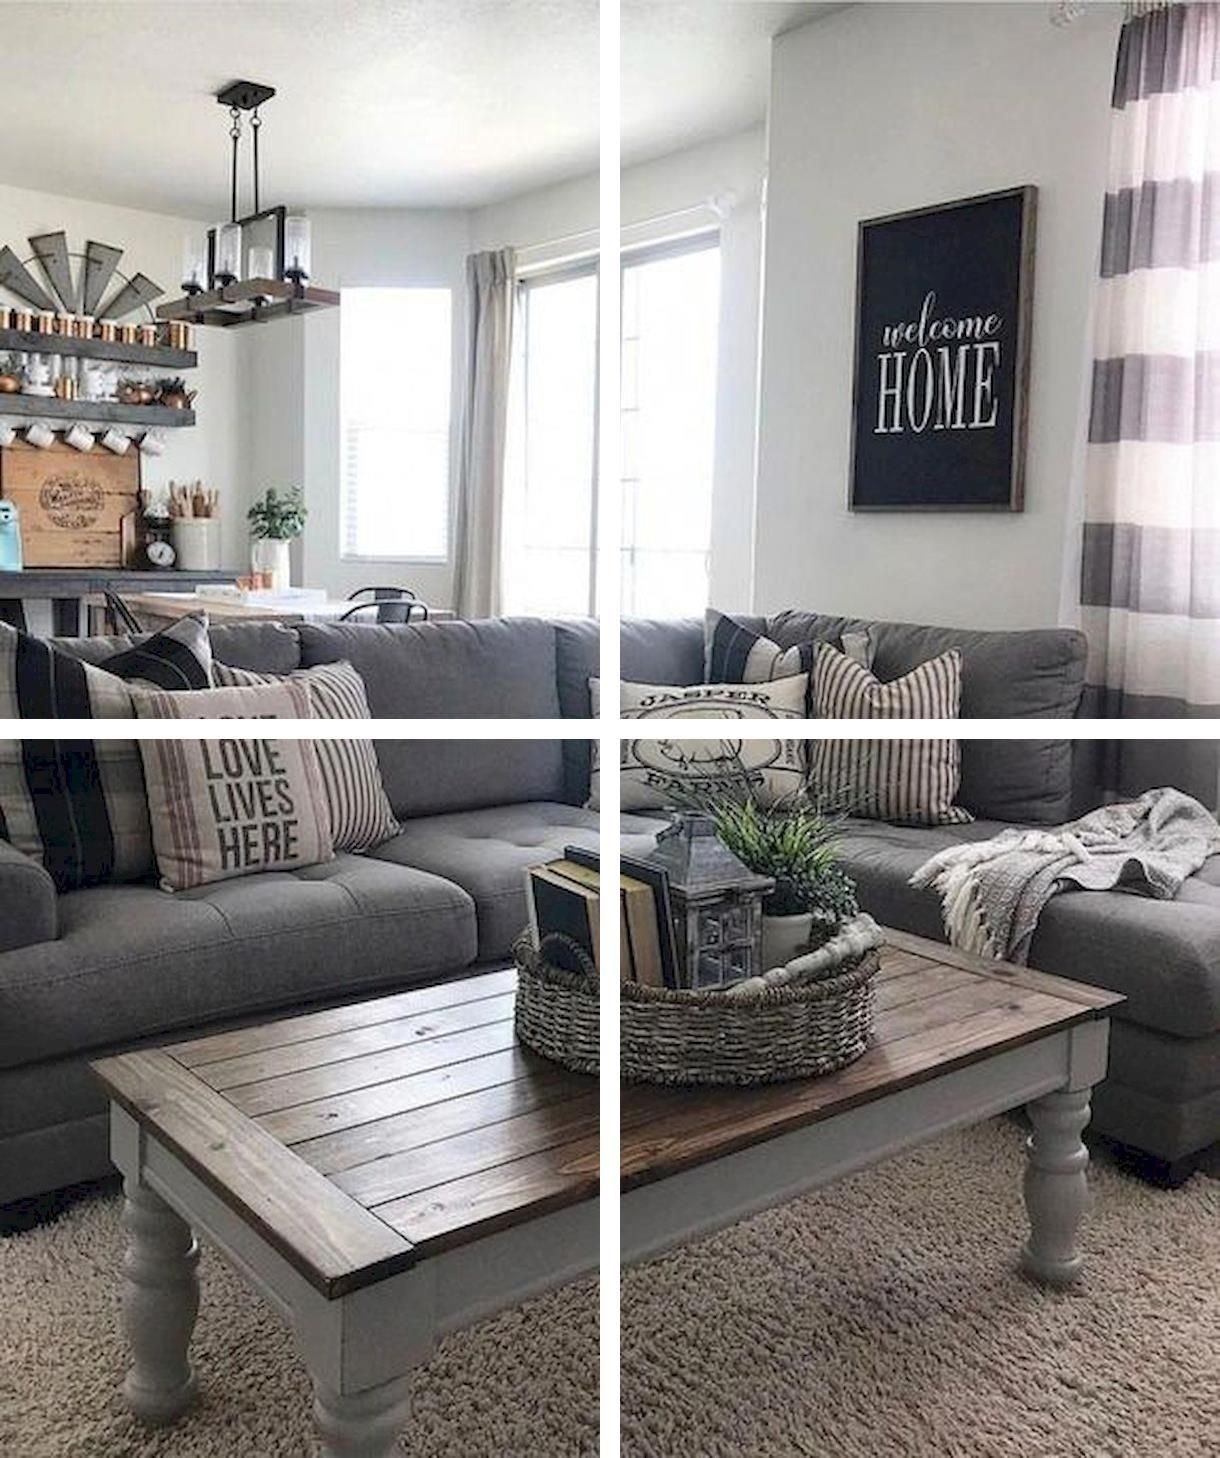 Indian Home Decor Ideas On A Budget Cheap Apt Decorating Ideas How To Decorate Drawin Living Room Decor Modern Front Room Furnishings Living Room Furniture